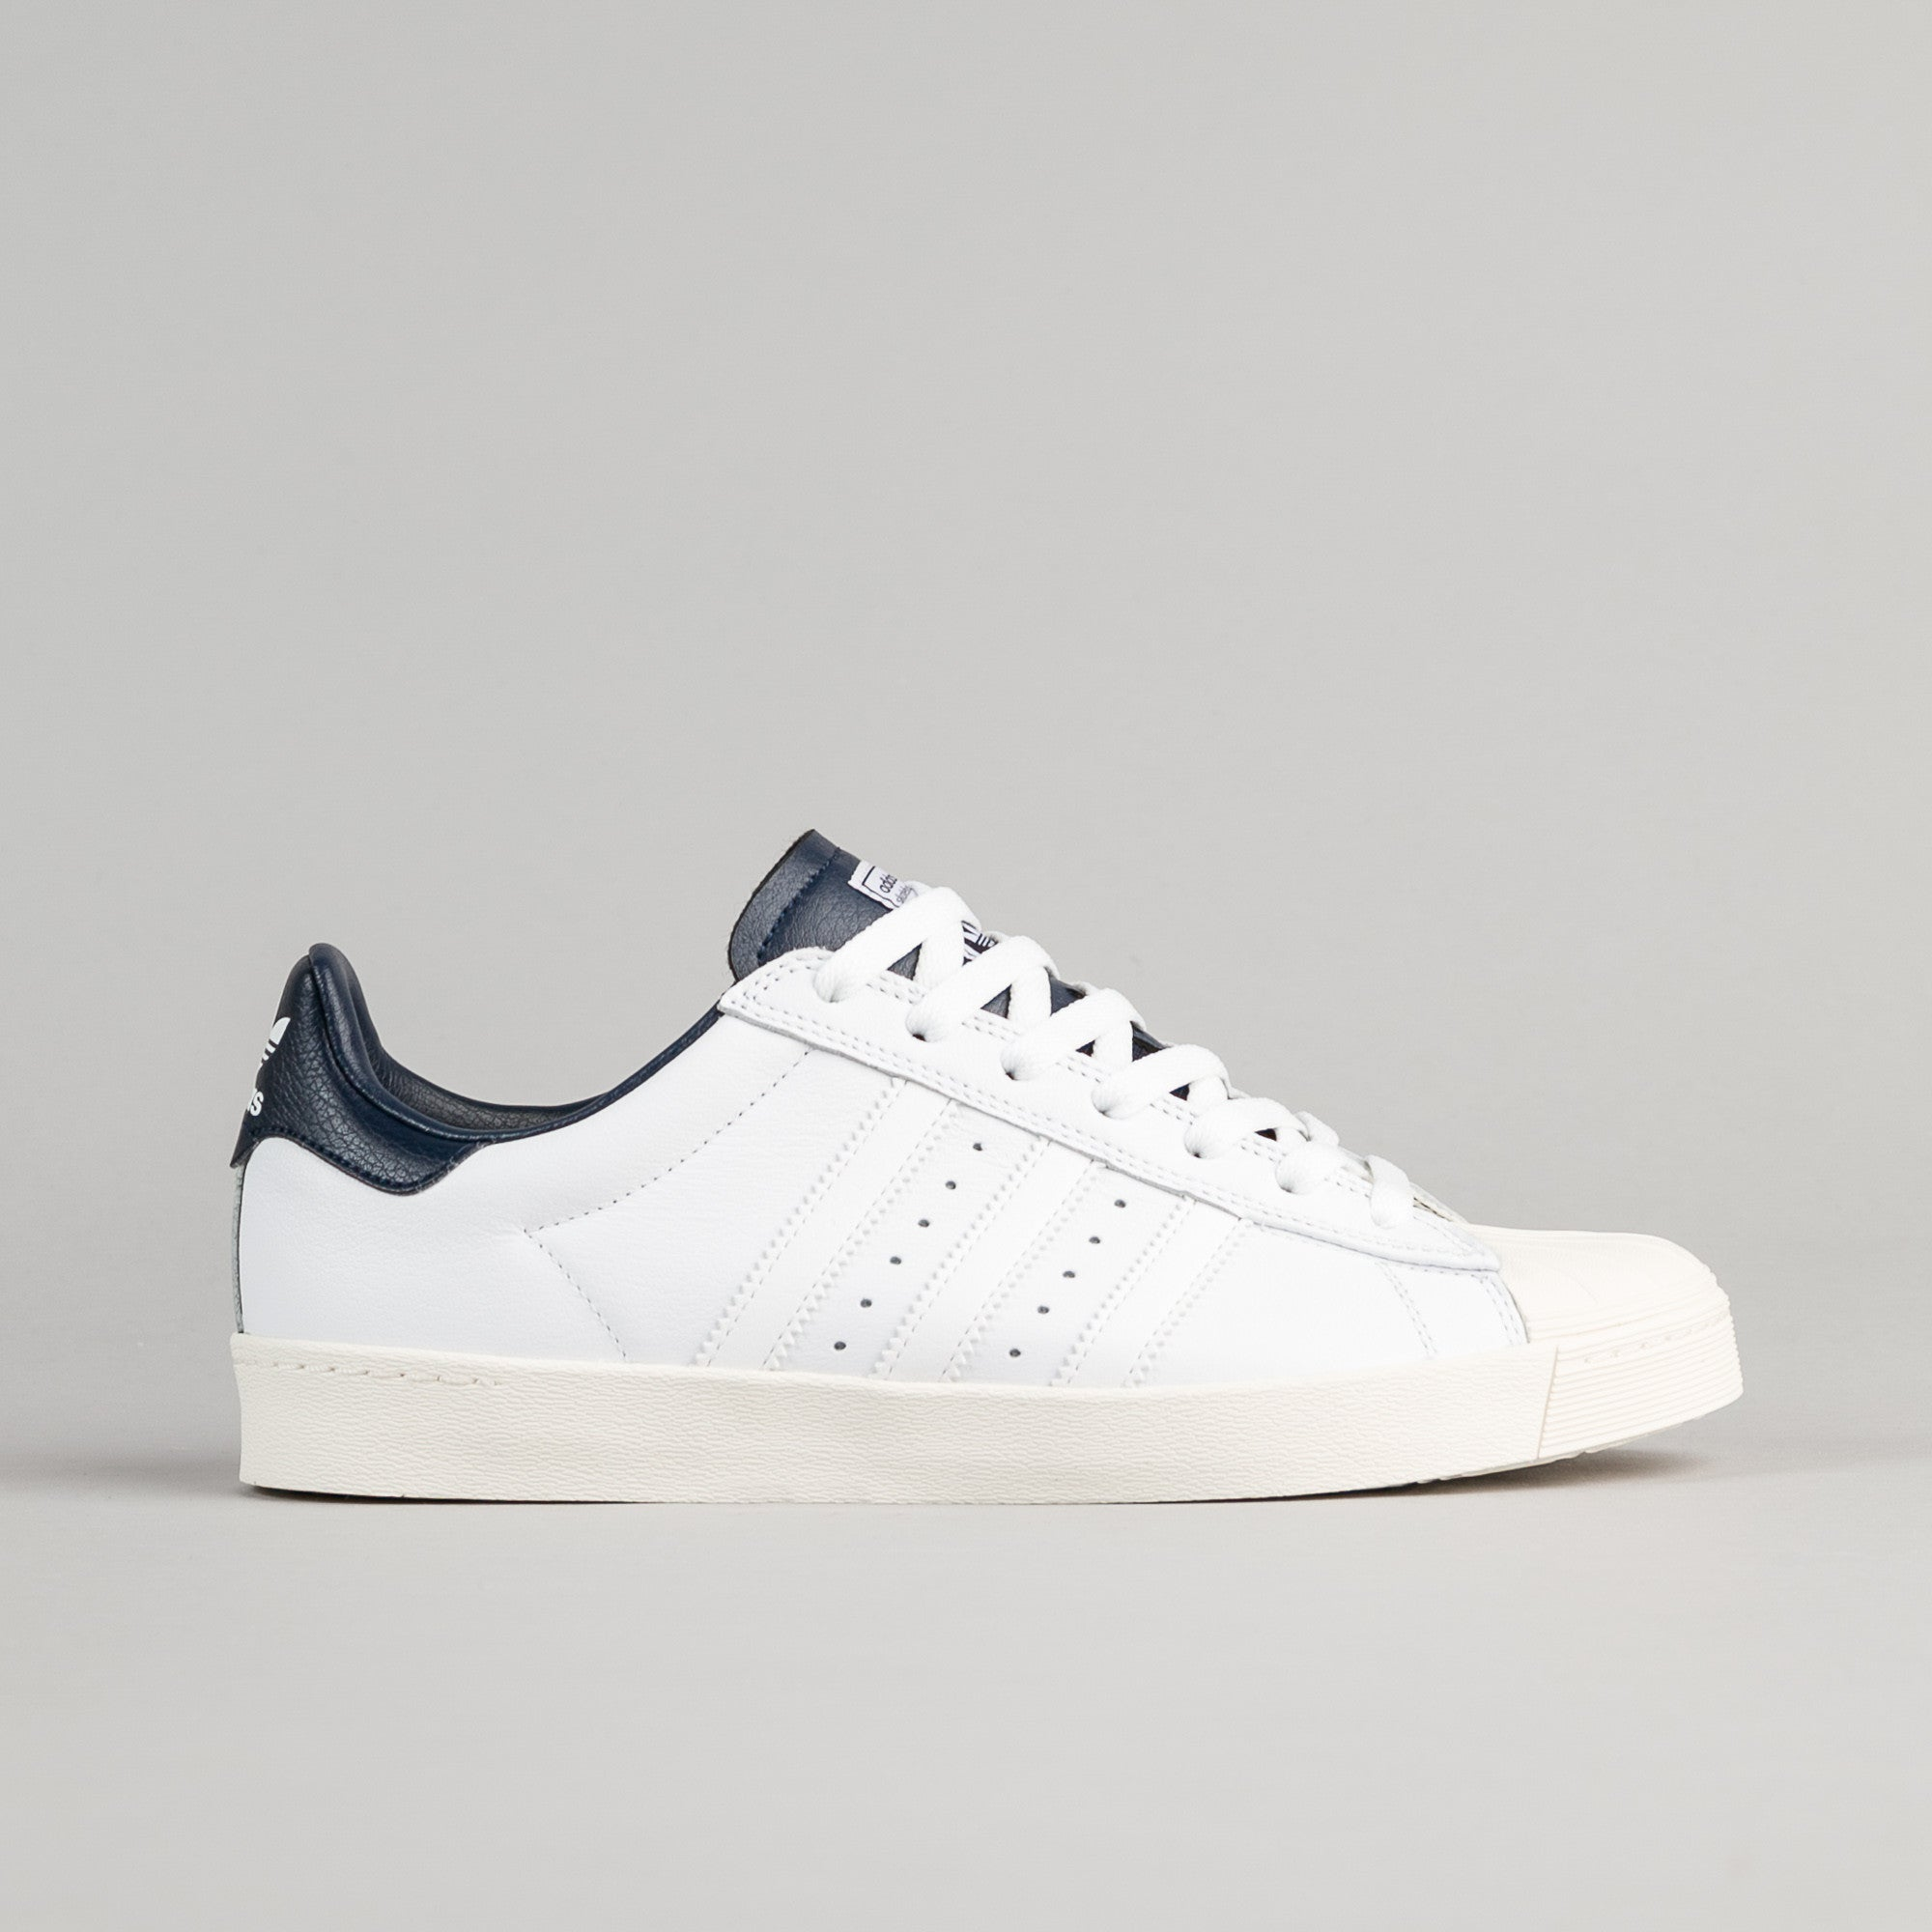 adidas Superstar Lace Up Floral Trainers for Women